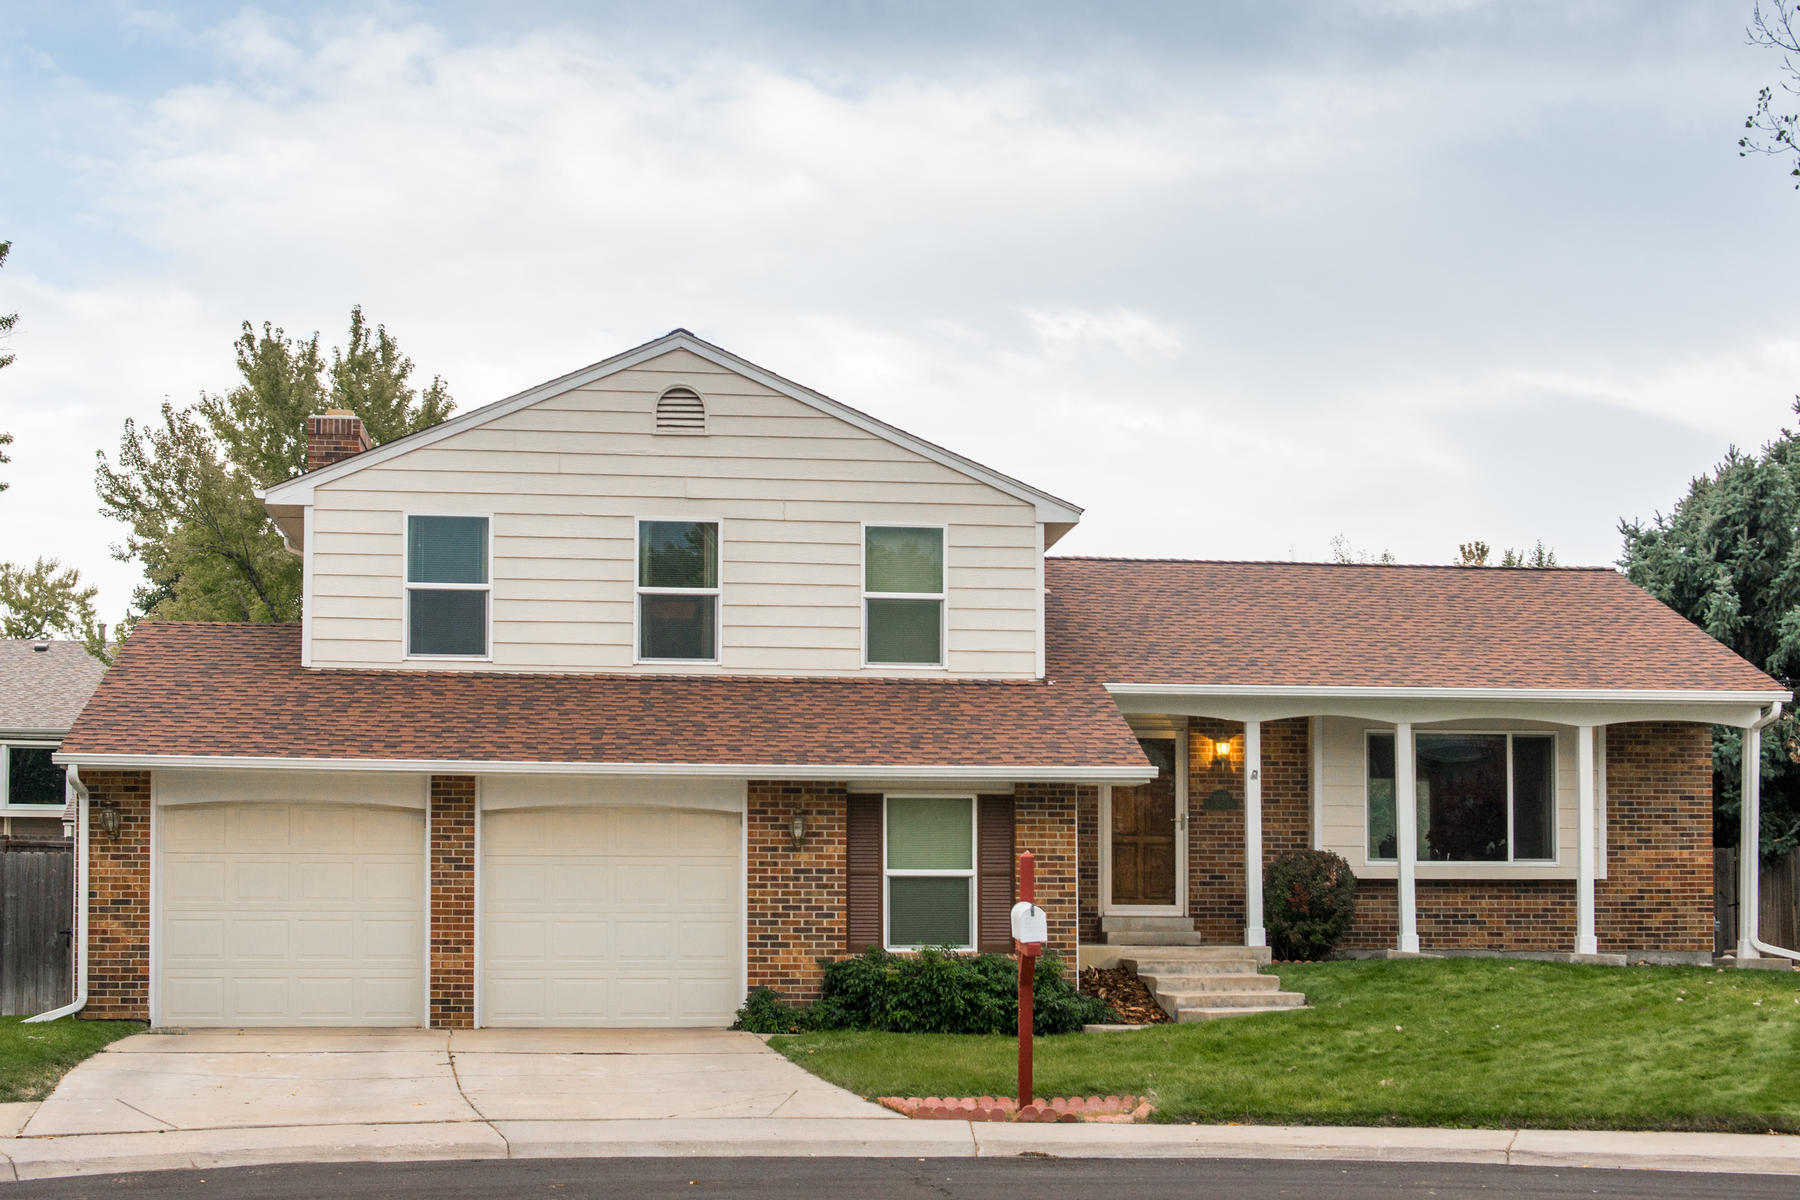 Single Family Home for Active at This cheery little tri-level sits in what we see as just about the perfect local 1496 S Yampa Ct Aurora, Colorado 80017 United States